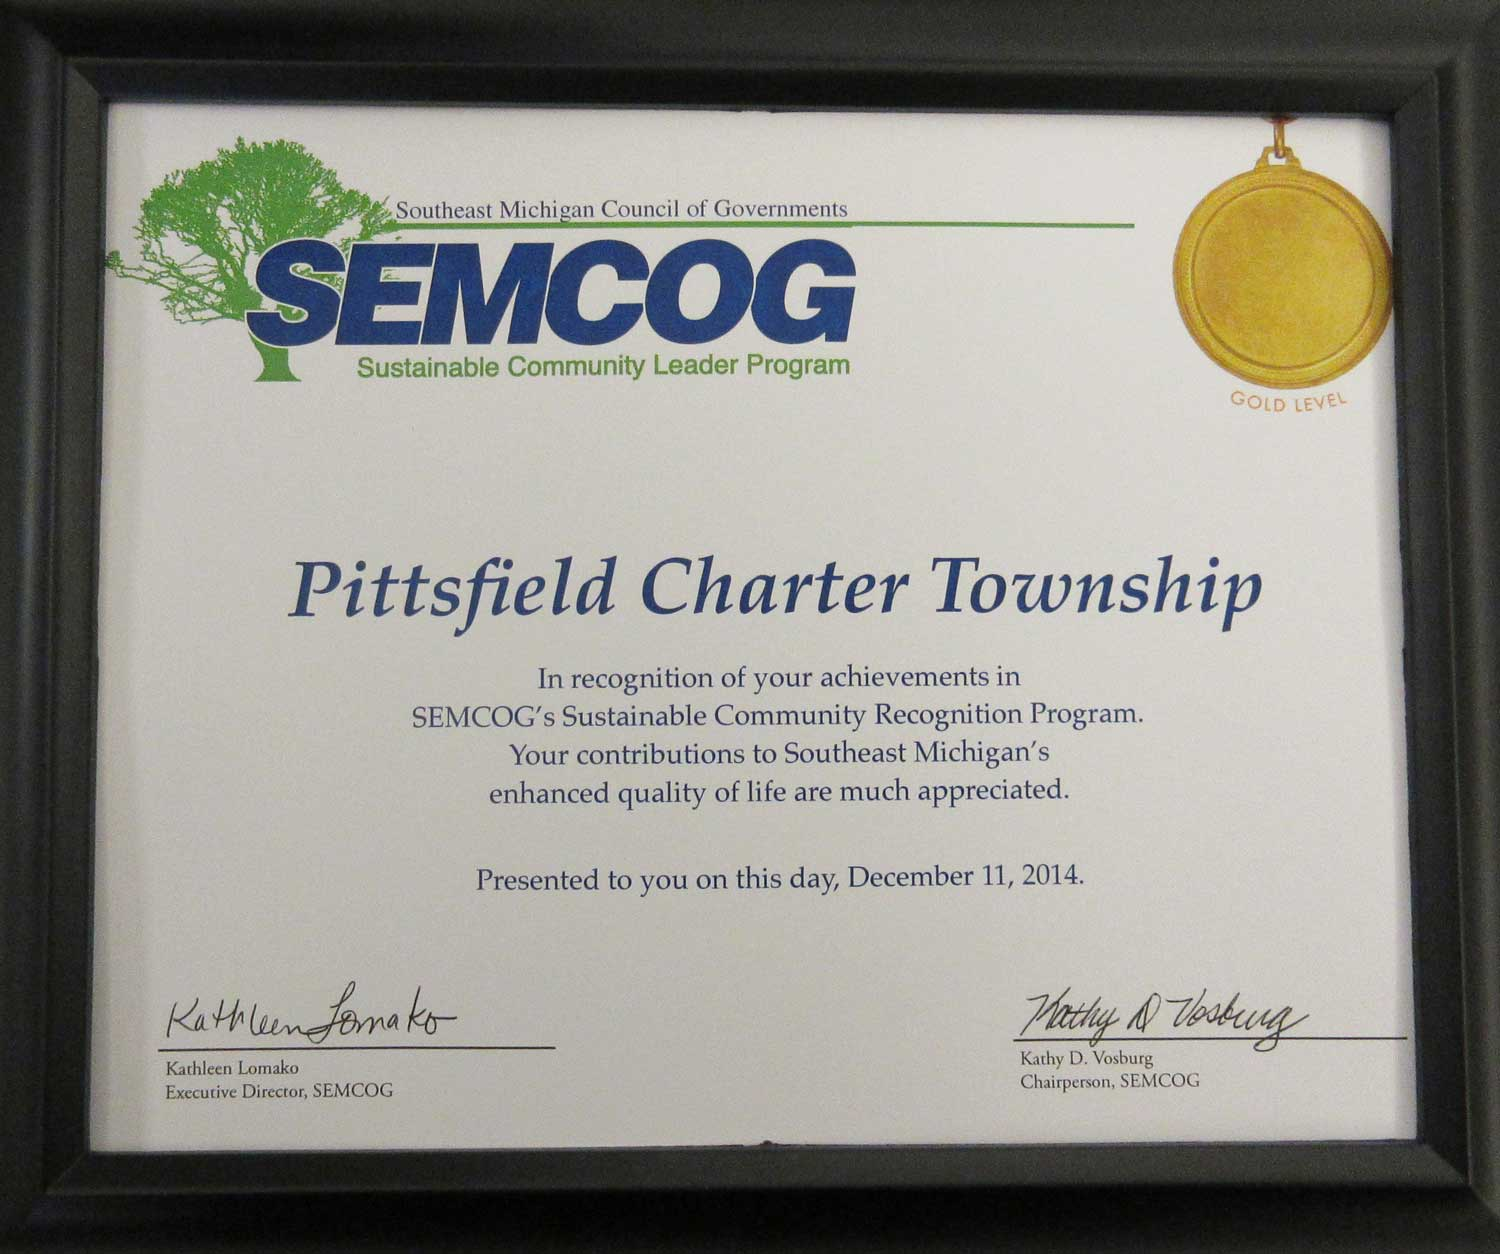 SEMCOG sustainability award